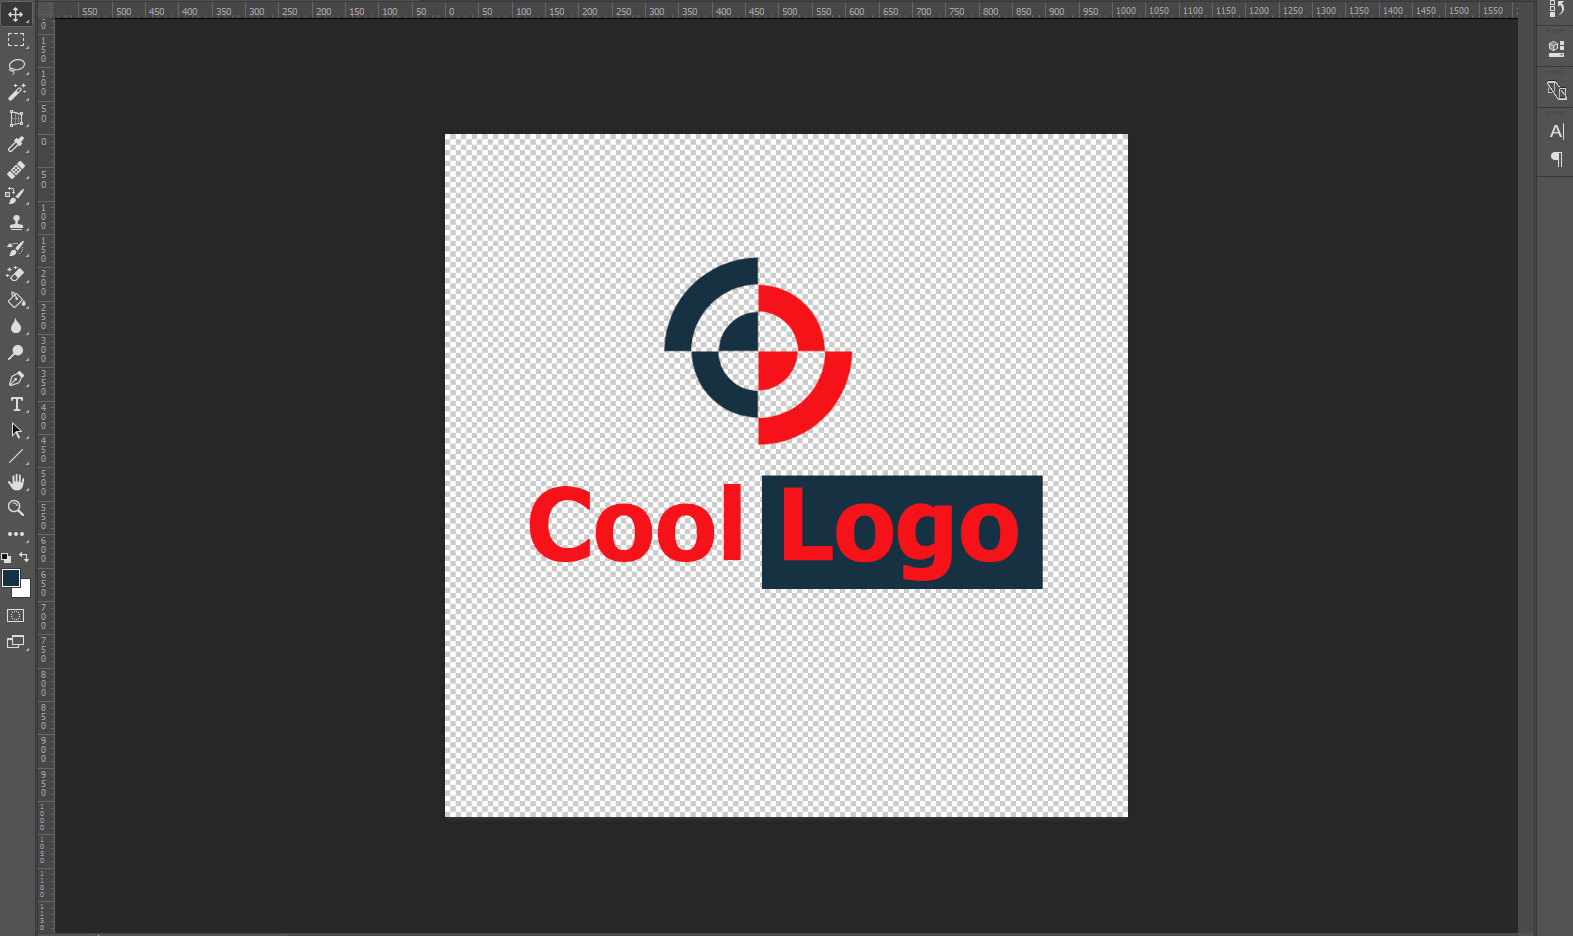 Logotipo via photoshop